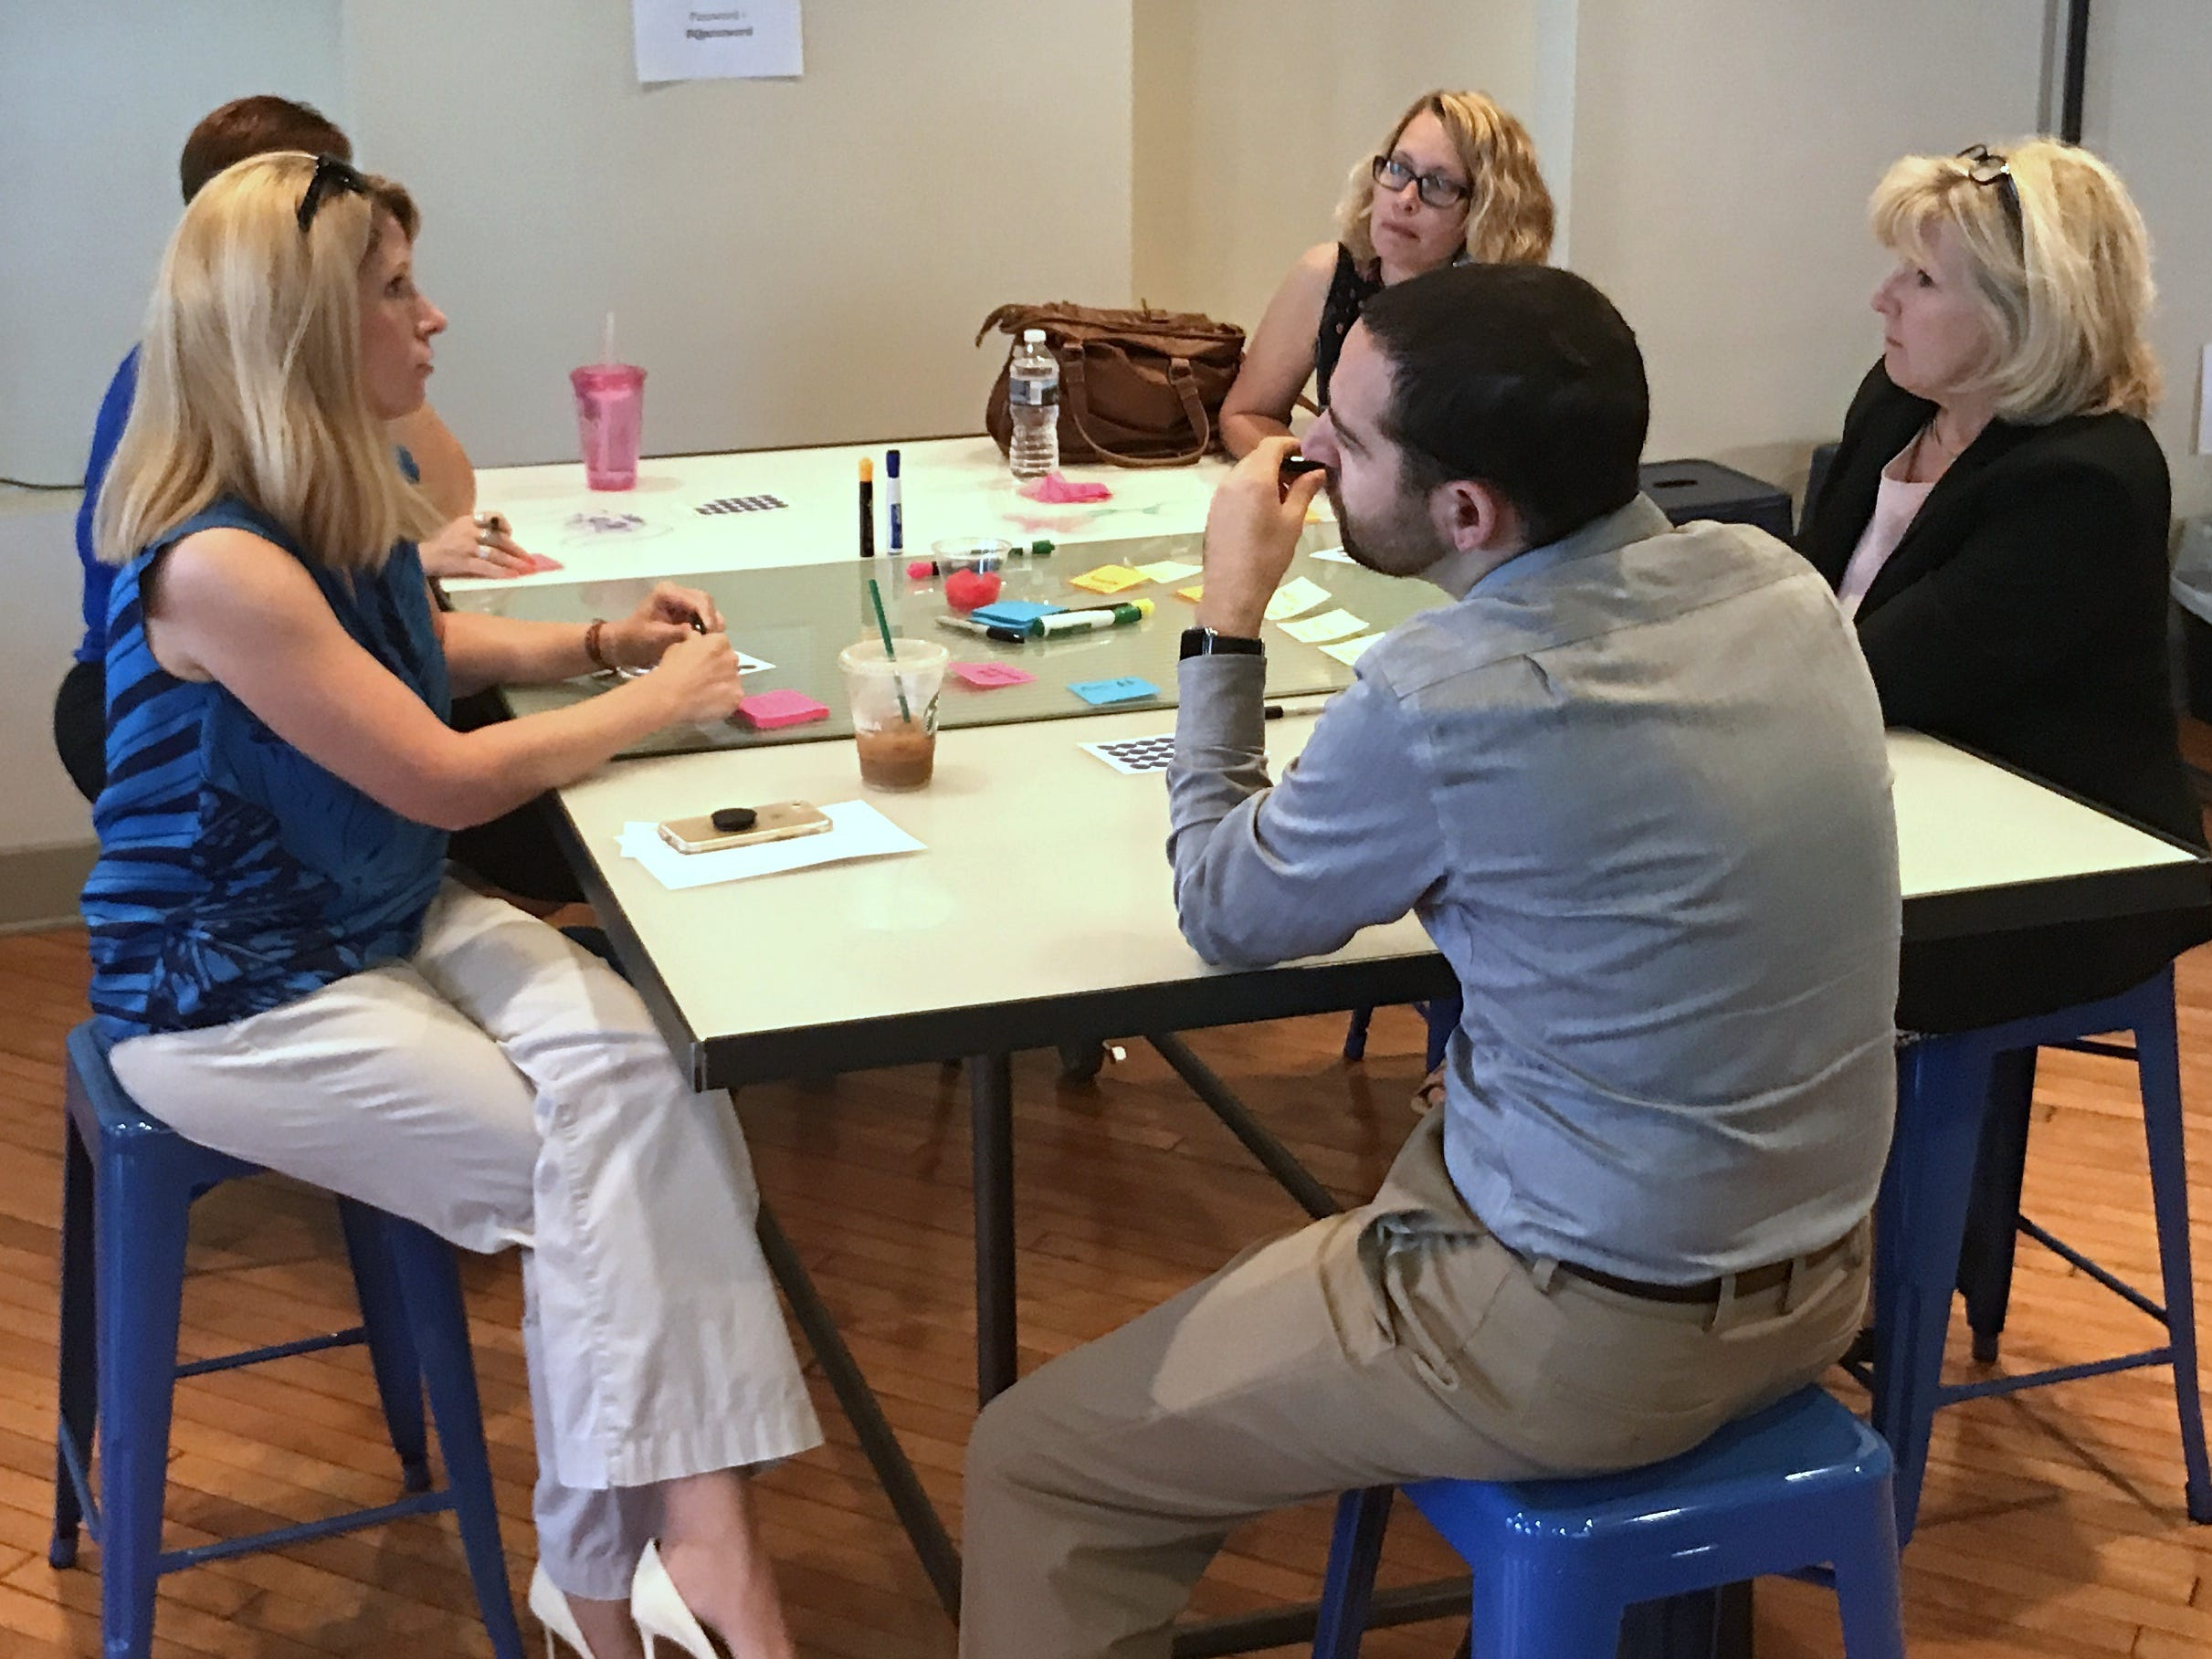 Cultural Alliance funded partners and community members participate in an ideation session. Leading up to its 20th Anniversary, the Cultural Alliance wants to understand how they can best support and strengthen arts and culture in York County and position the organization for strength and sustainability into the next 20 years. To accomplish this, they have been working with design thinking consultant Erin McGlaughlin of DesignQuake to interview donors, volunteers, funded partners, non-funded partners, and community leaders over the past year to answer the question: how can the Cultural Alliance meet the needs of the York community now and in the years to come? The Alliance is now sharing those findings and inviting the residents of York County to engage in an open dialogue on arts and culture through their online cultural listening project site at www.future-culturalyork.org. submitted